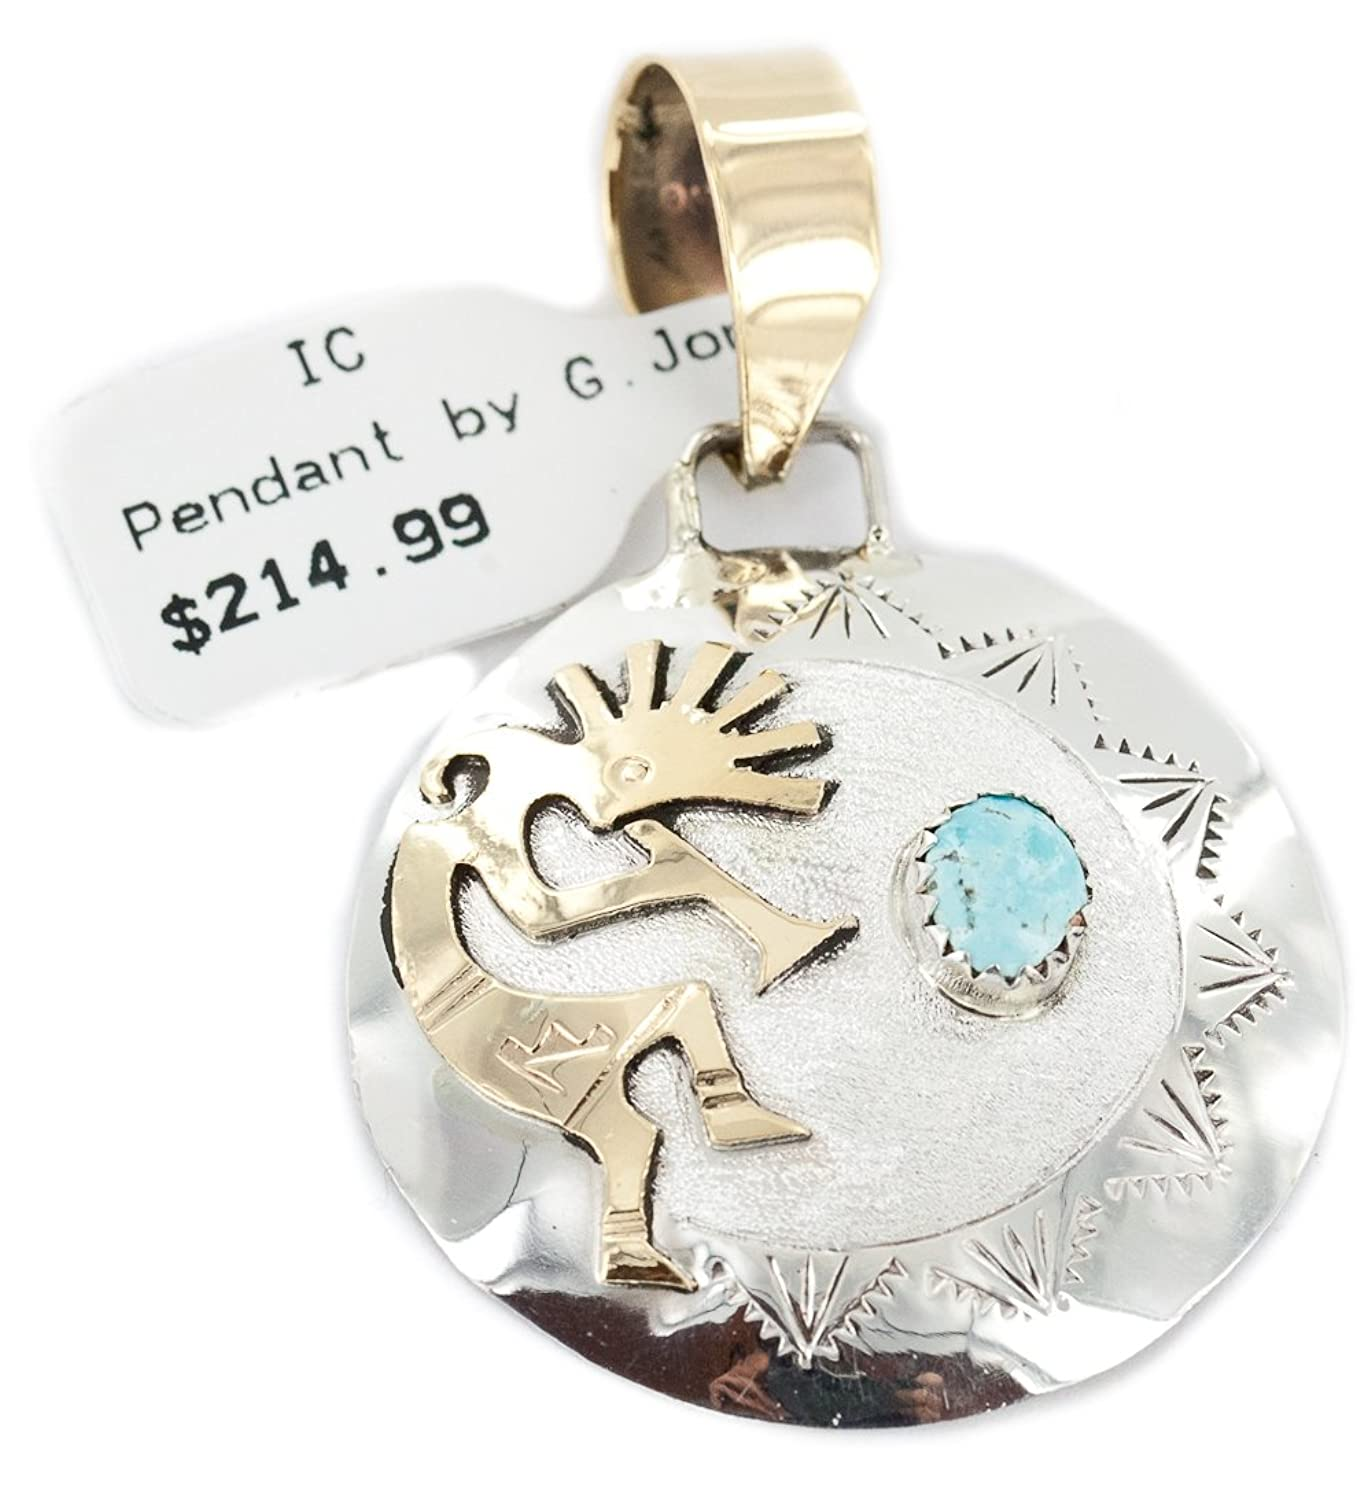 Very Delicate $215 Retail Tag 12kt Gold Filled and Silver Authentic Kokopelli Handmade Made by Genevieve Jones Navajo Natural Turquoise Native American Pendant